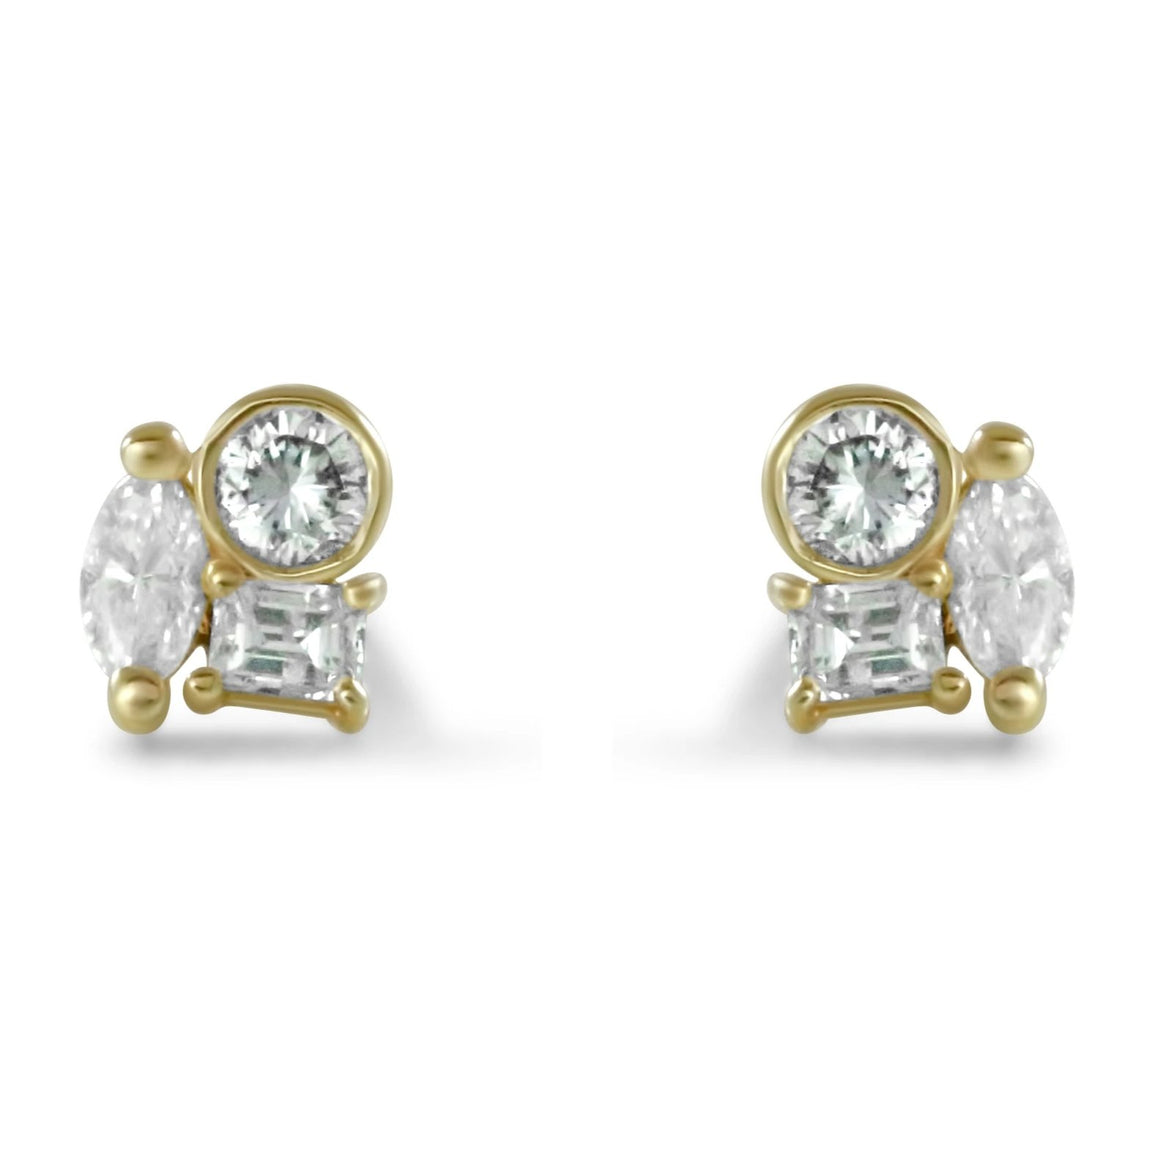 14k yellow gold diamond cluster stud earrings